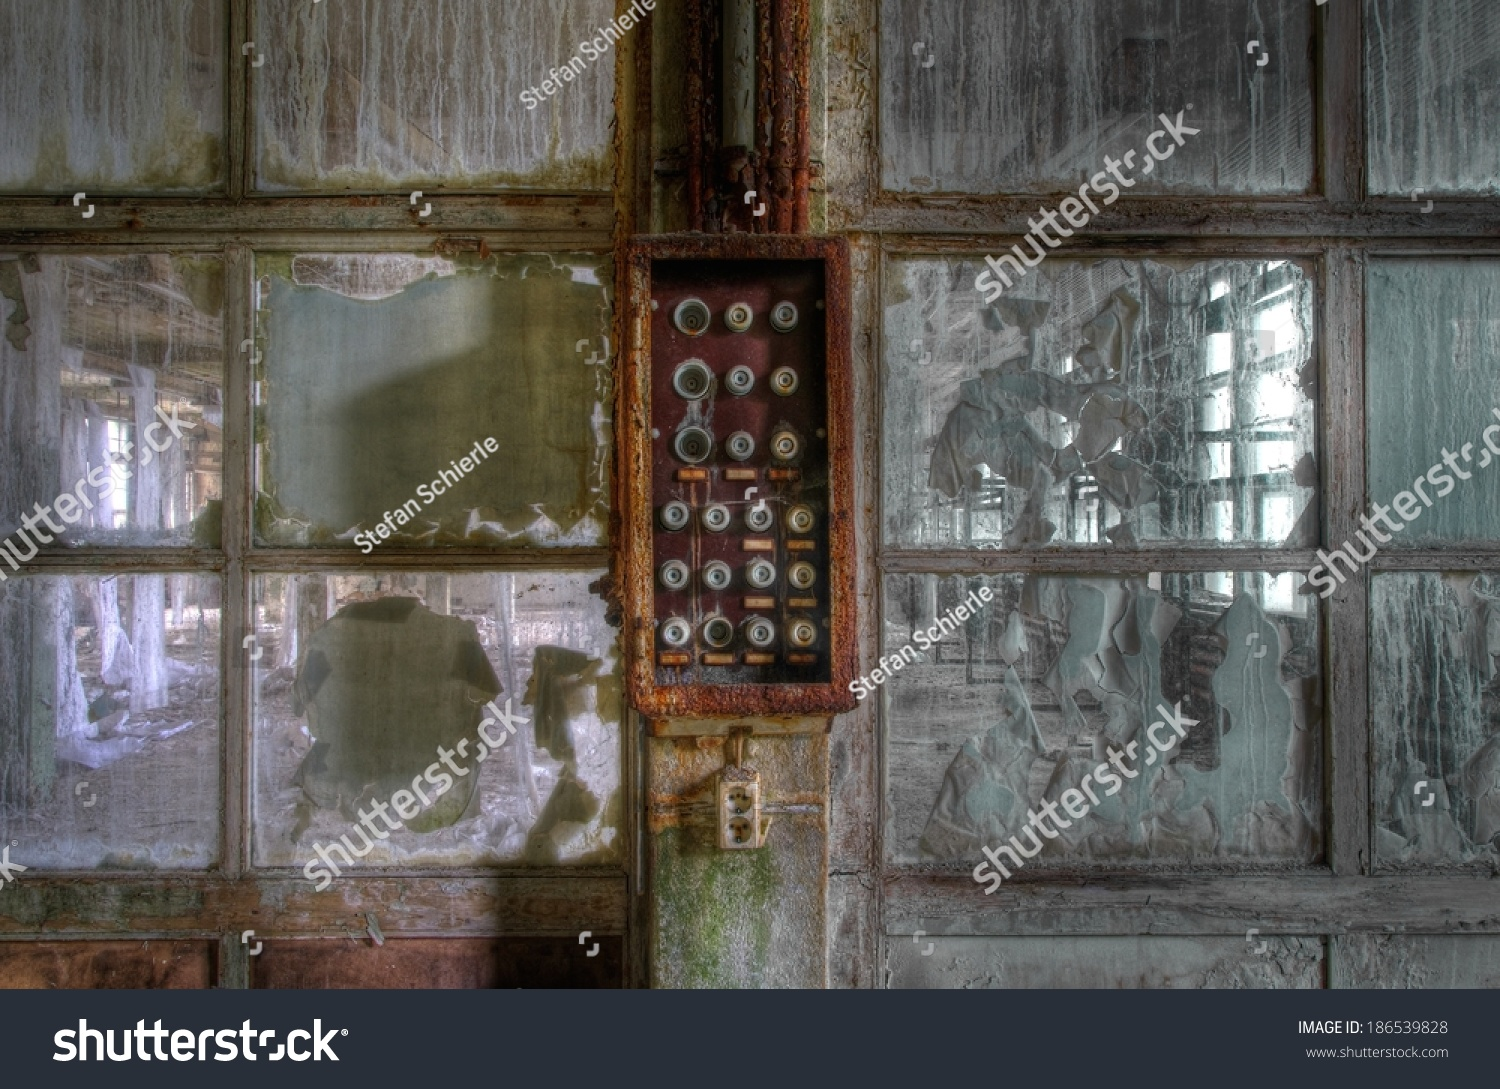 Old Fuse Box Door Trusted Wiring Diagrams Doors Abandoned Hall Stock Photo Edit Now 186539828 Rh Shutterstock Com Electrical House